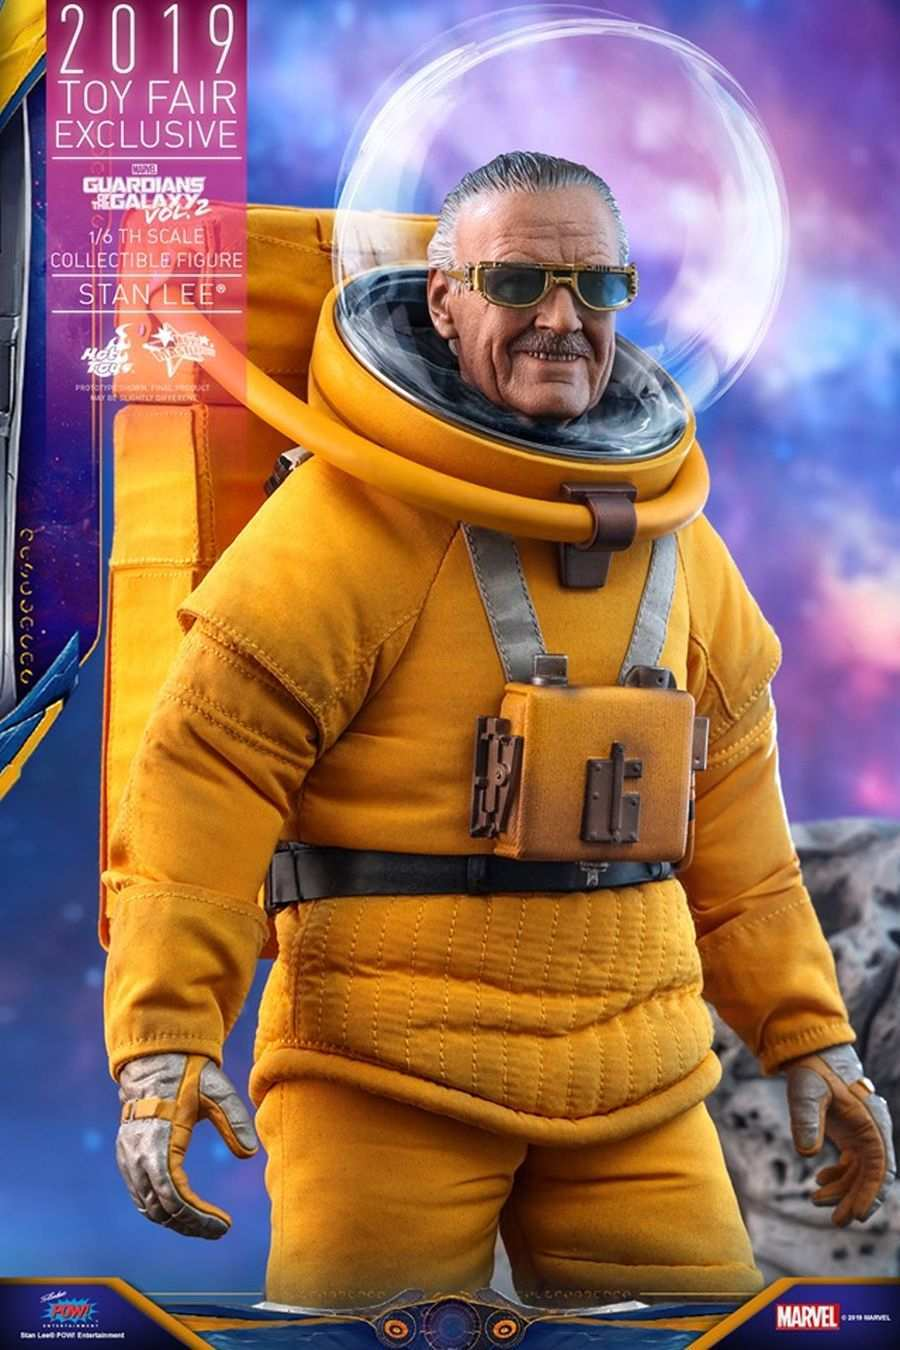 Guardians of the Galaxy Vol. 2 - Stan Lee Collectible Figure 15